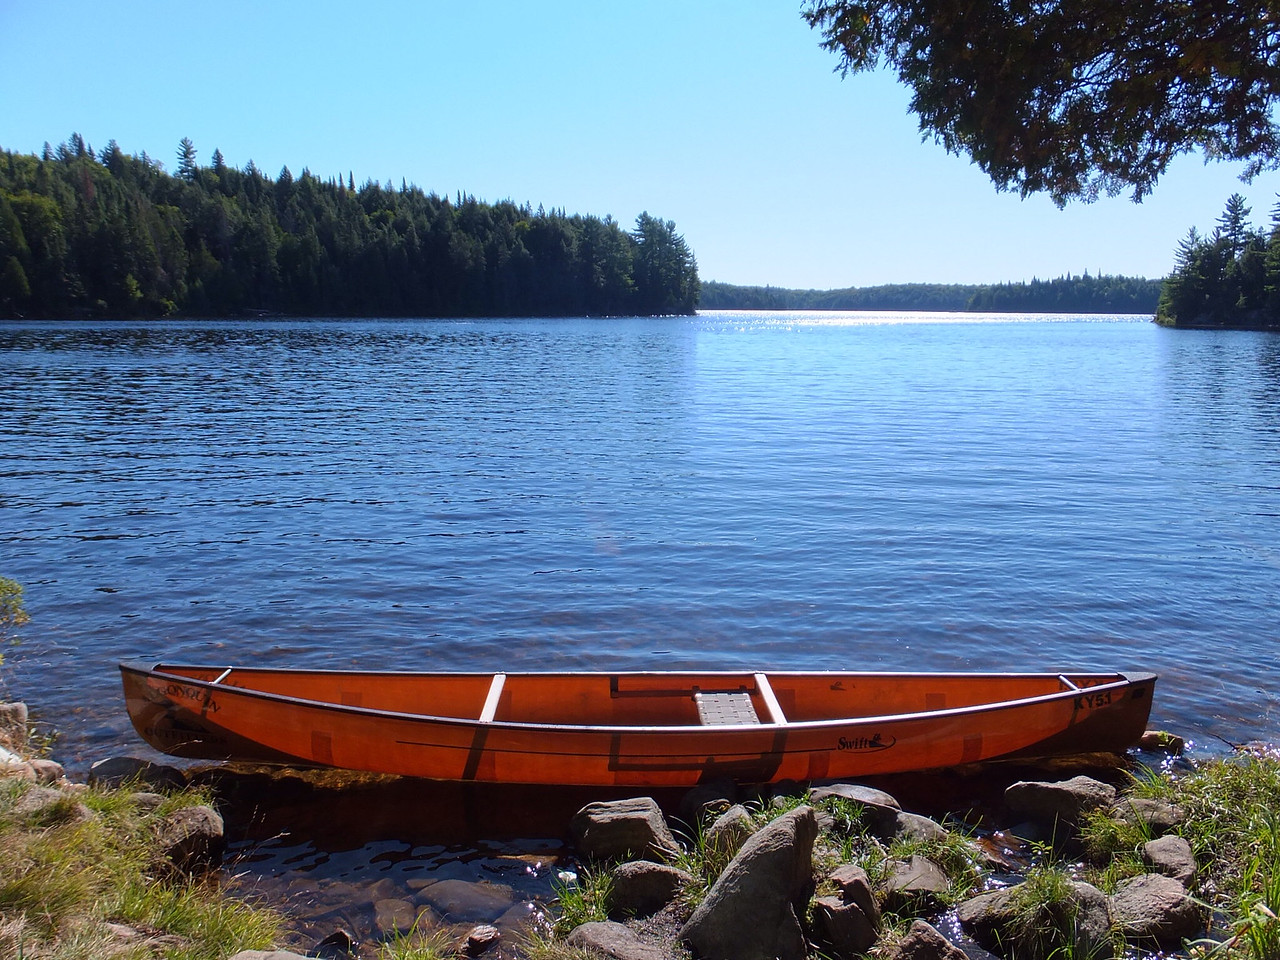 Keewaydin 15, designed by Dave Yost, built by Swift Canoe